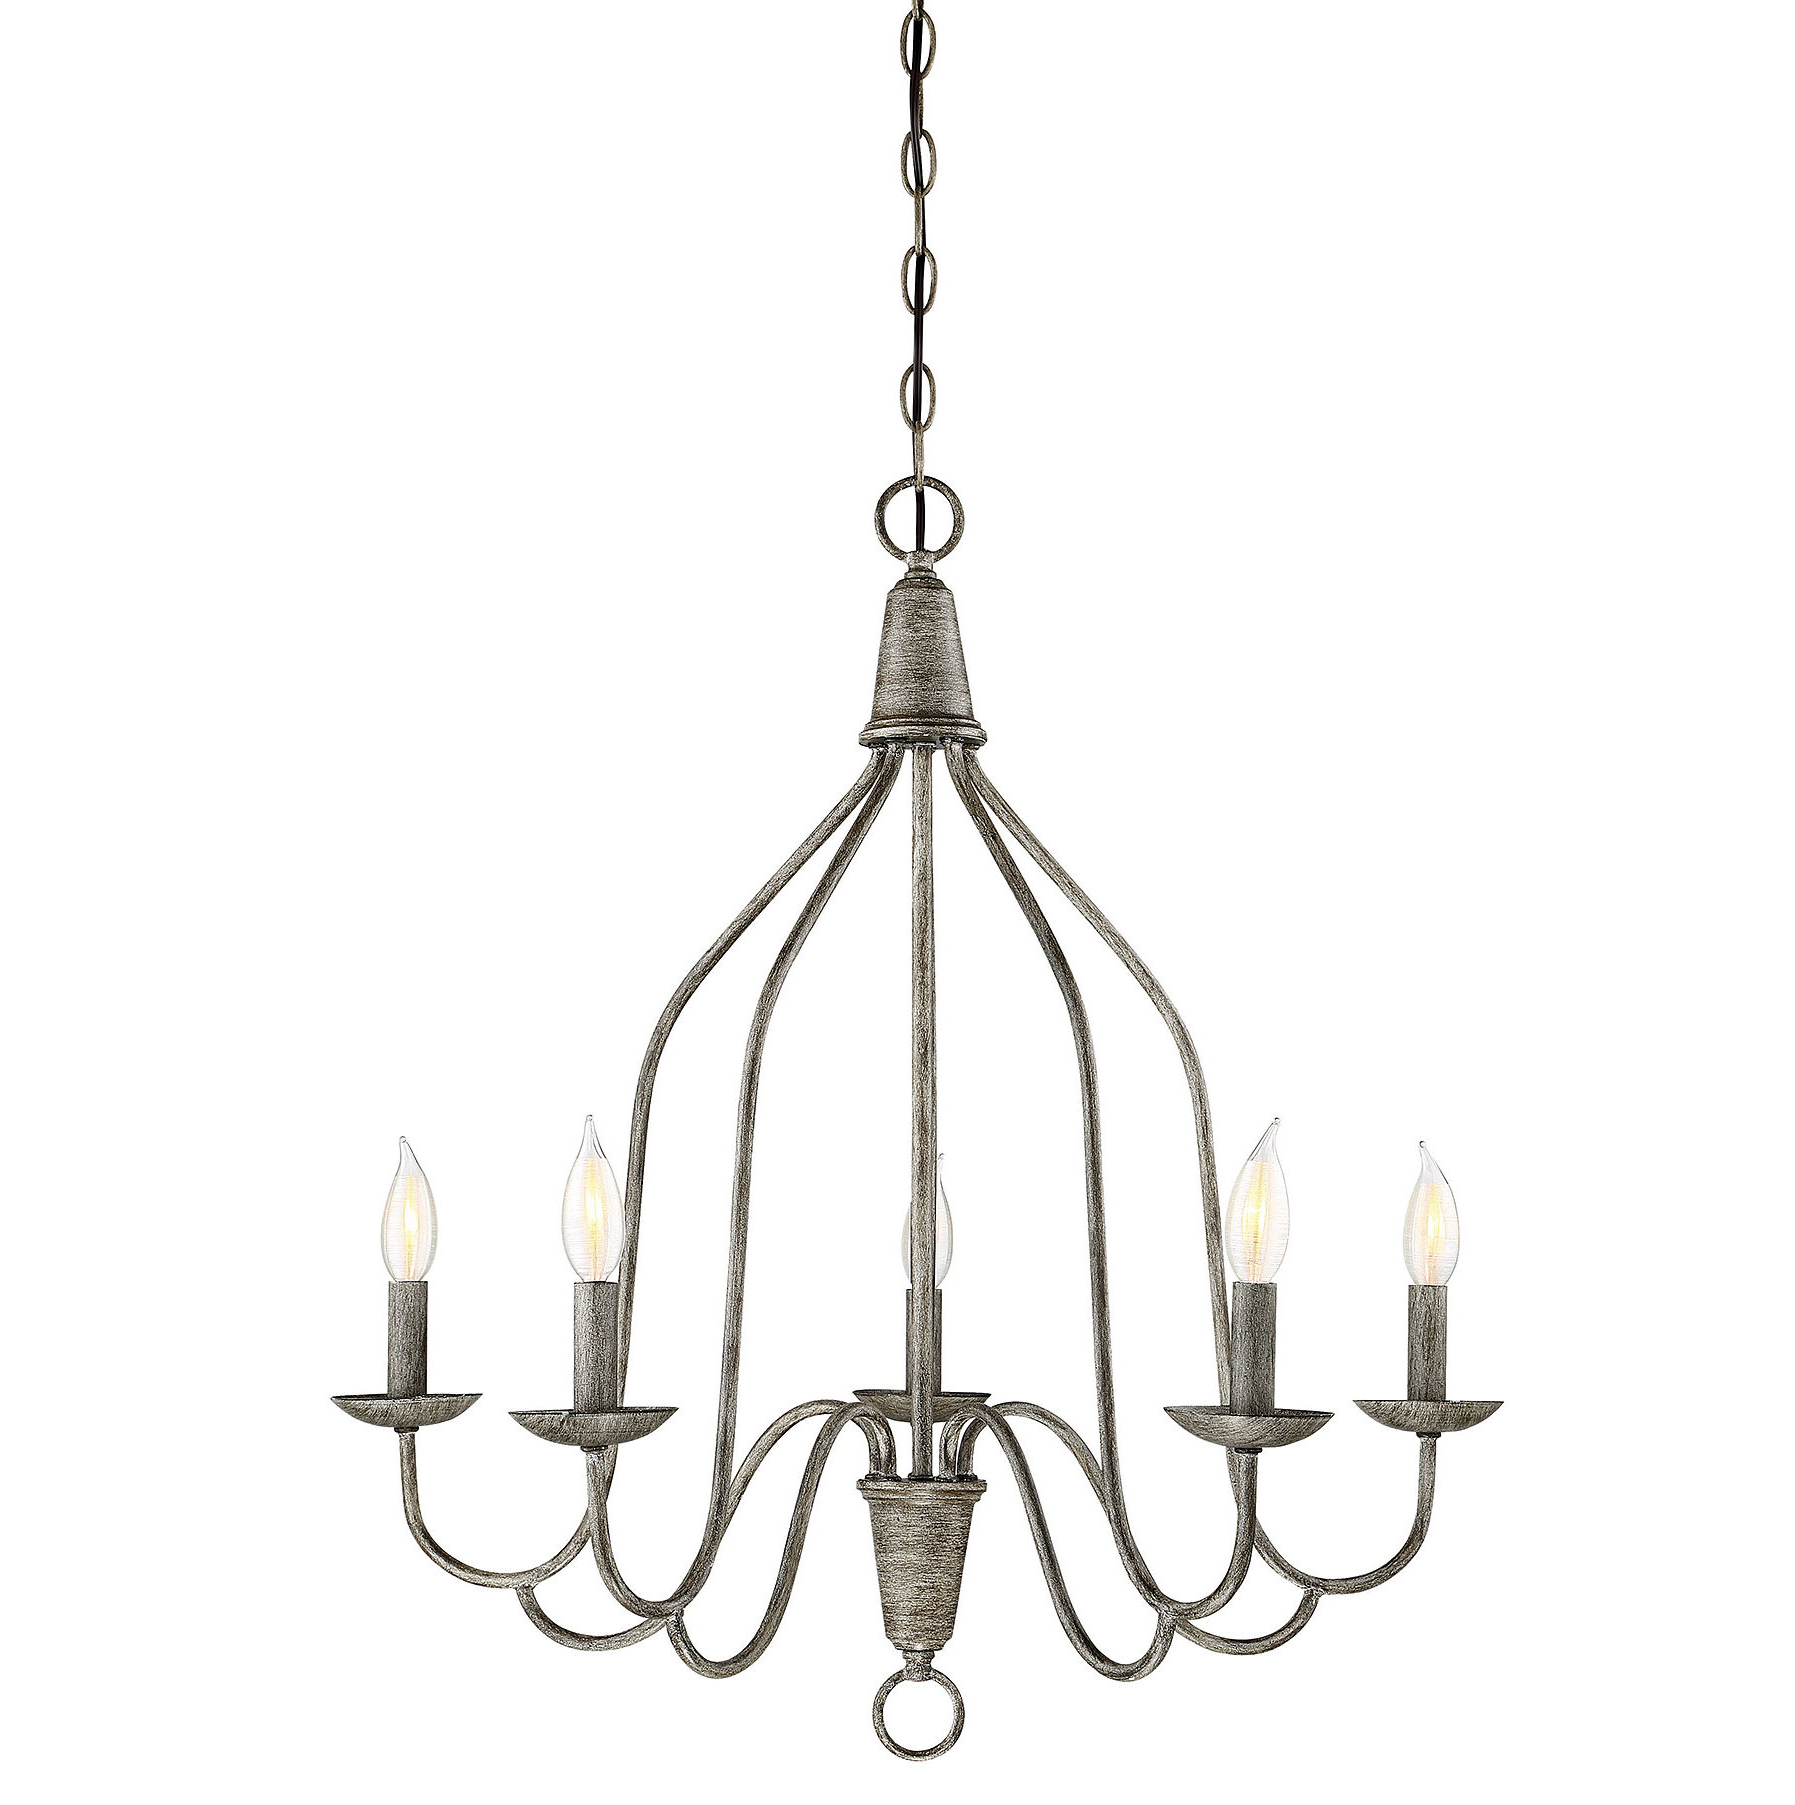 Most Recently Released Florentina 5 Light Candle Style Chandeliers Throughout Geeta 5 Light Candle Style Chandelier (View 9 of 25)